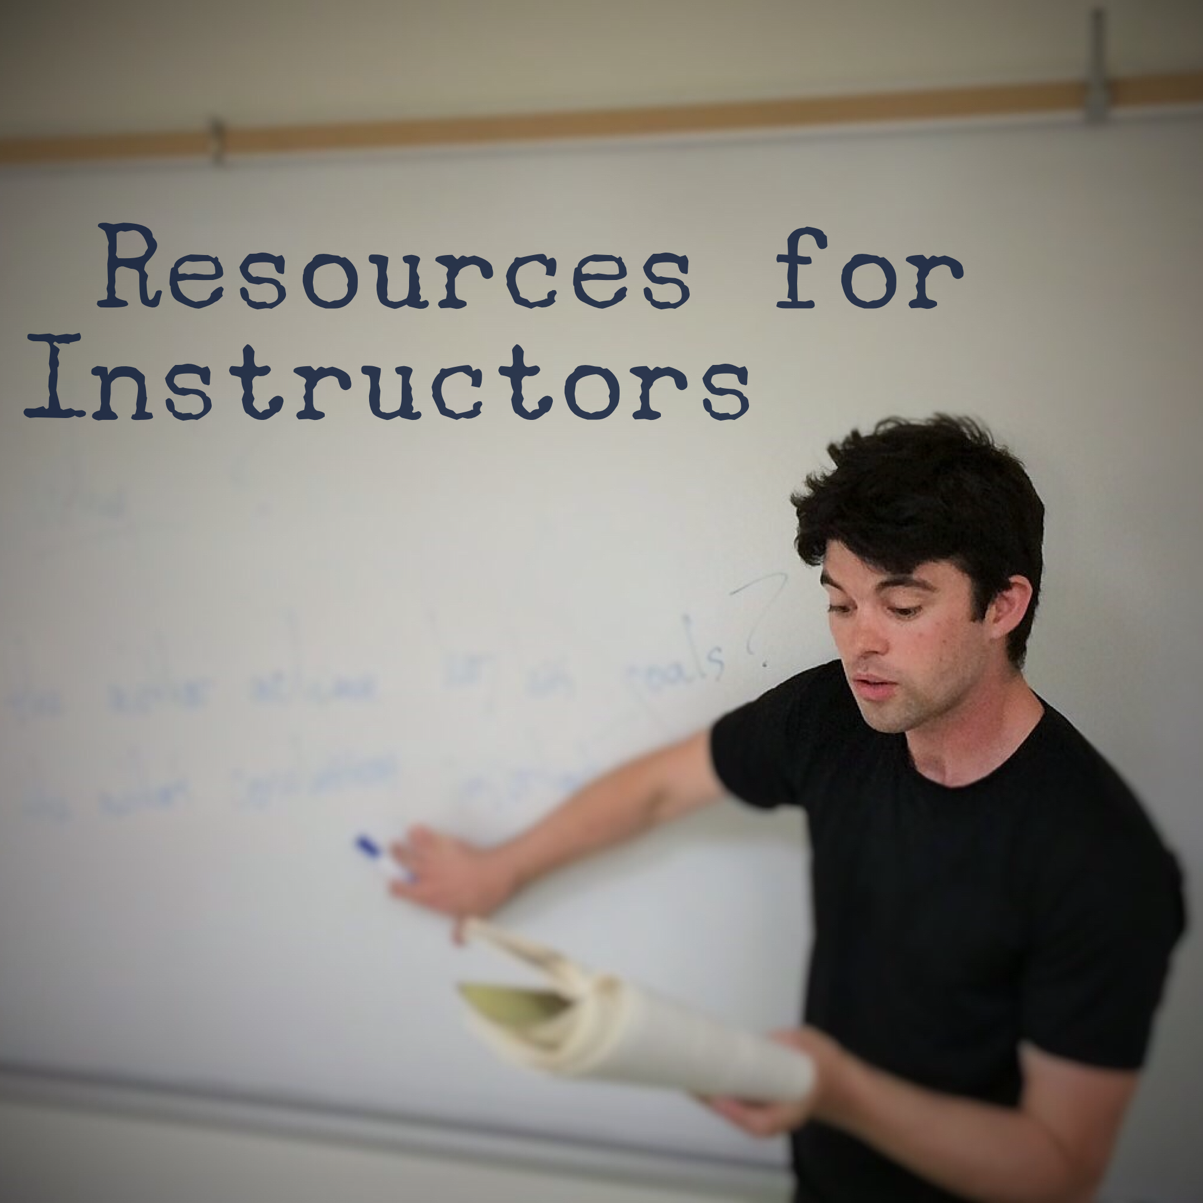 Resources for Instructors Button Click Here